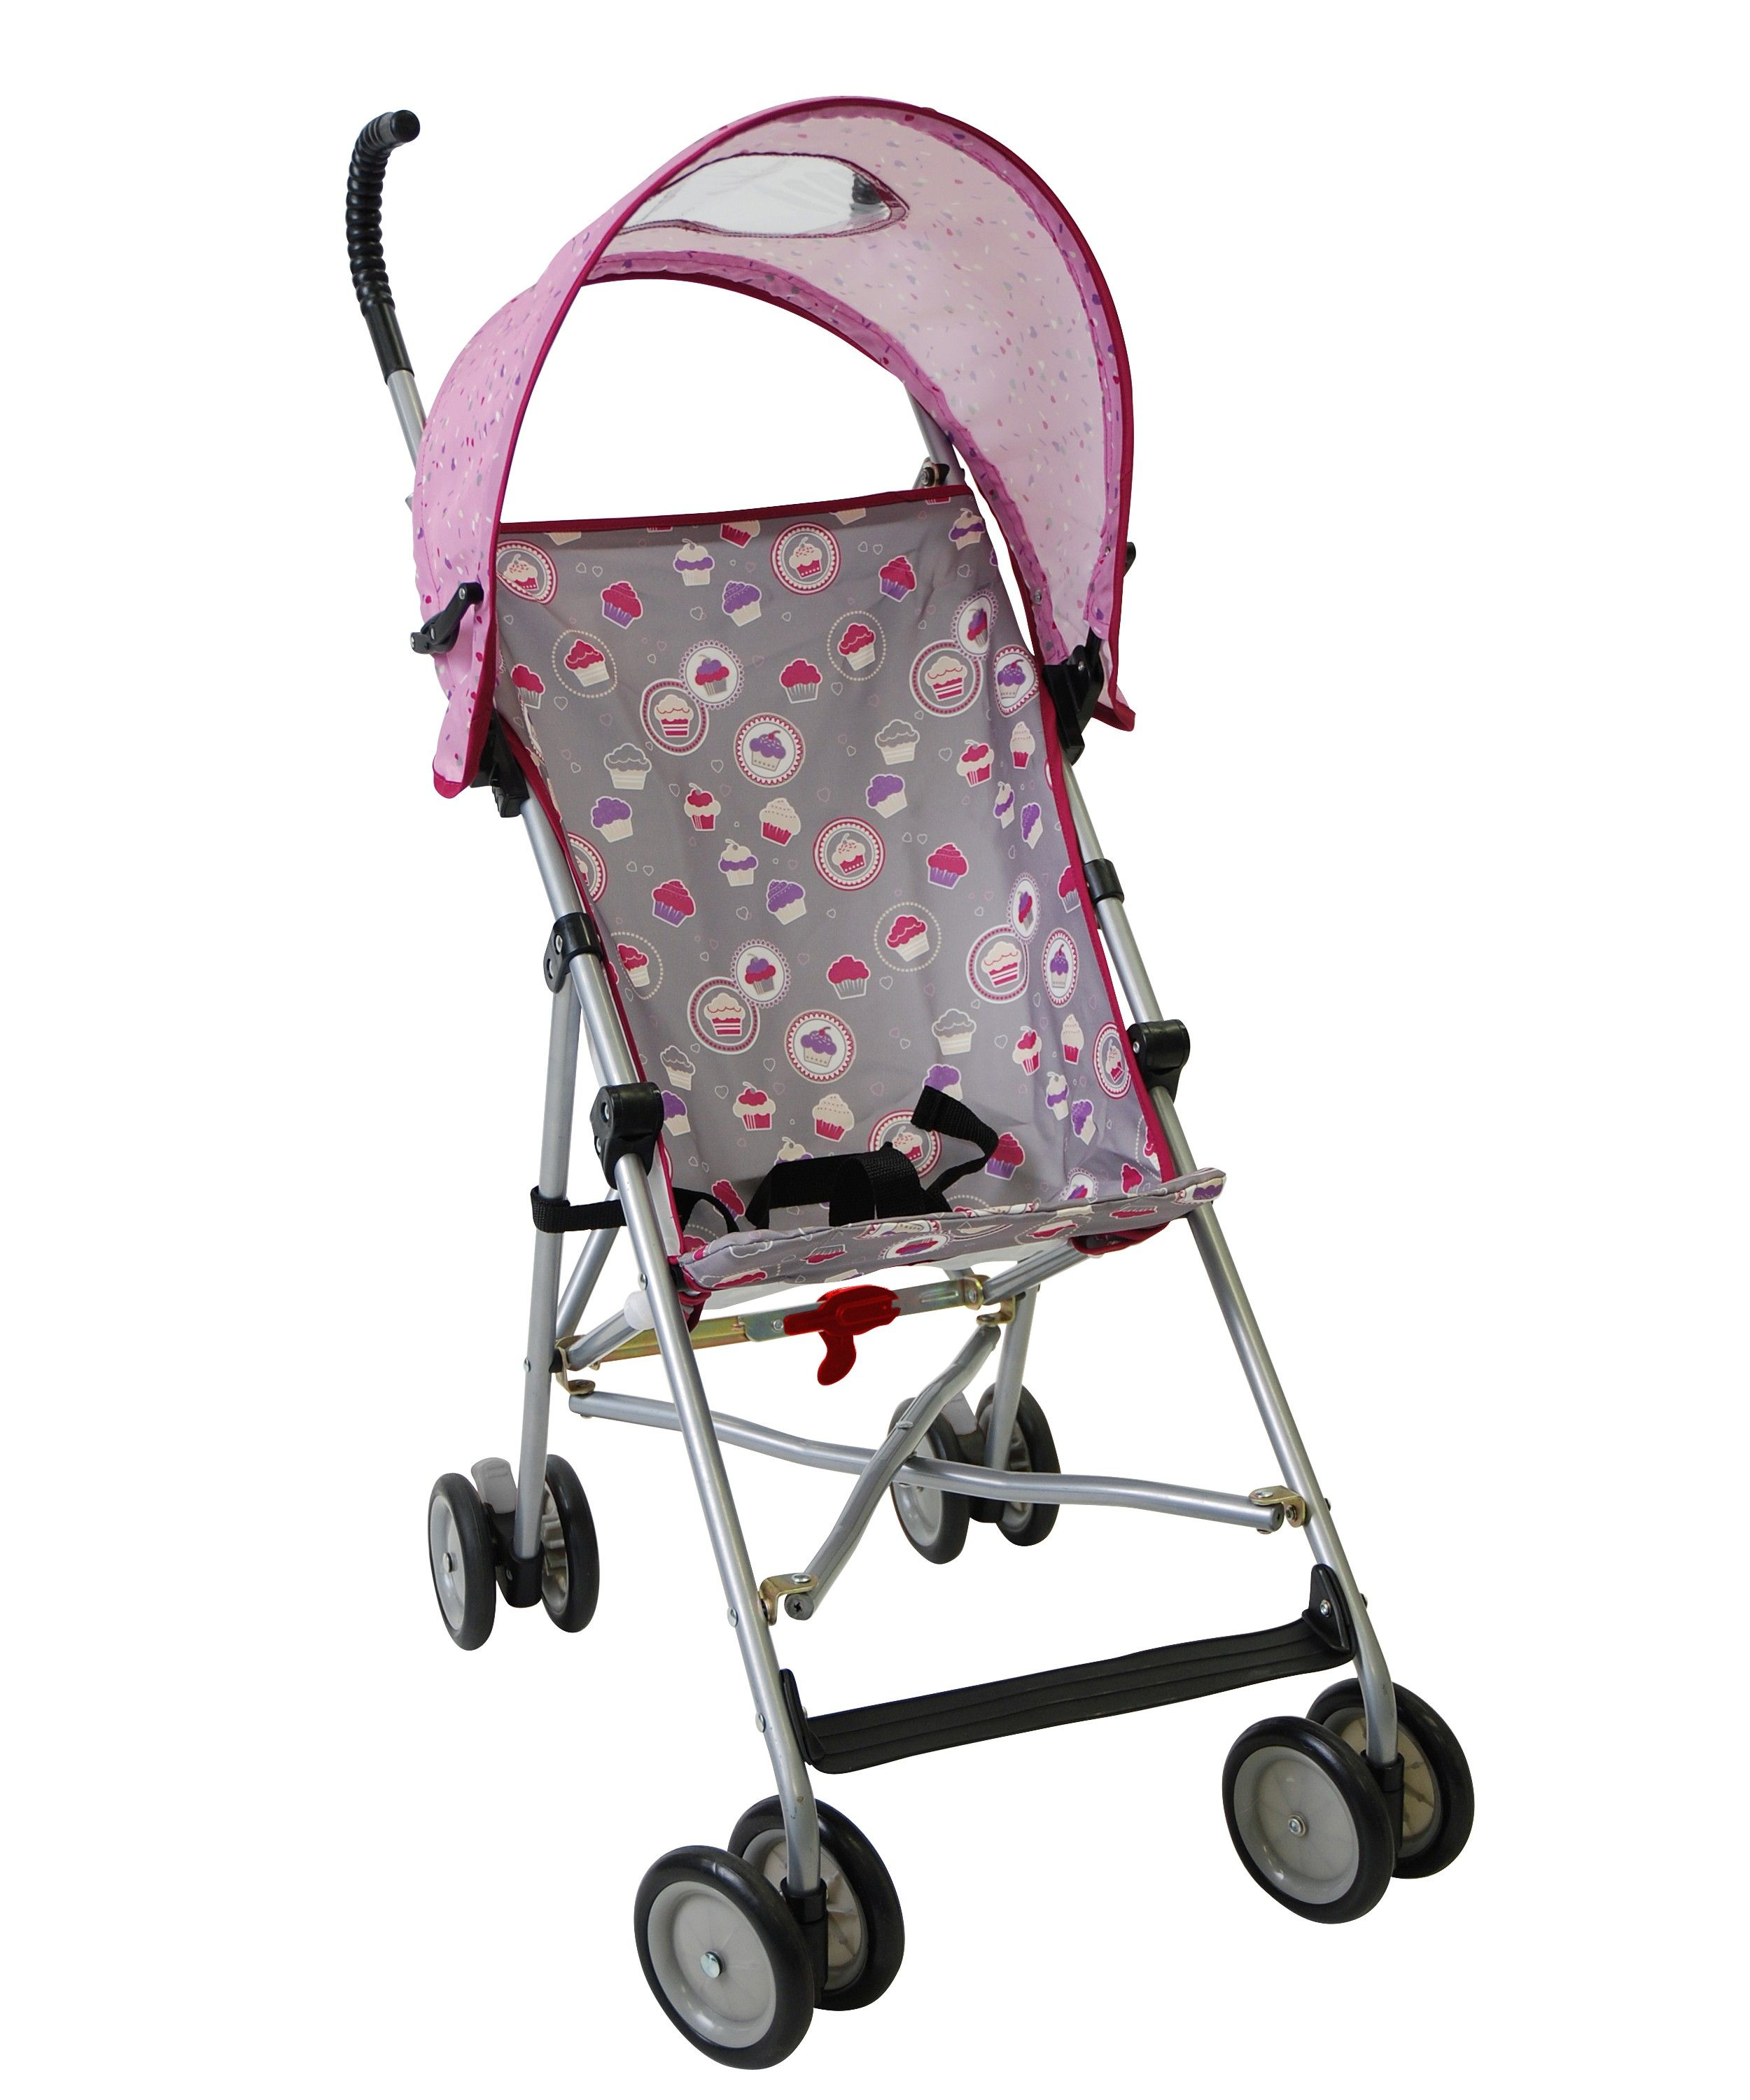 Umbrella Stroller with Canopy Sweet Treats Cosco Kids